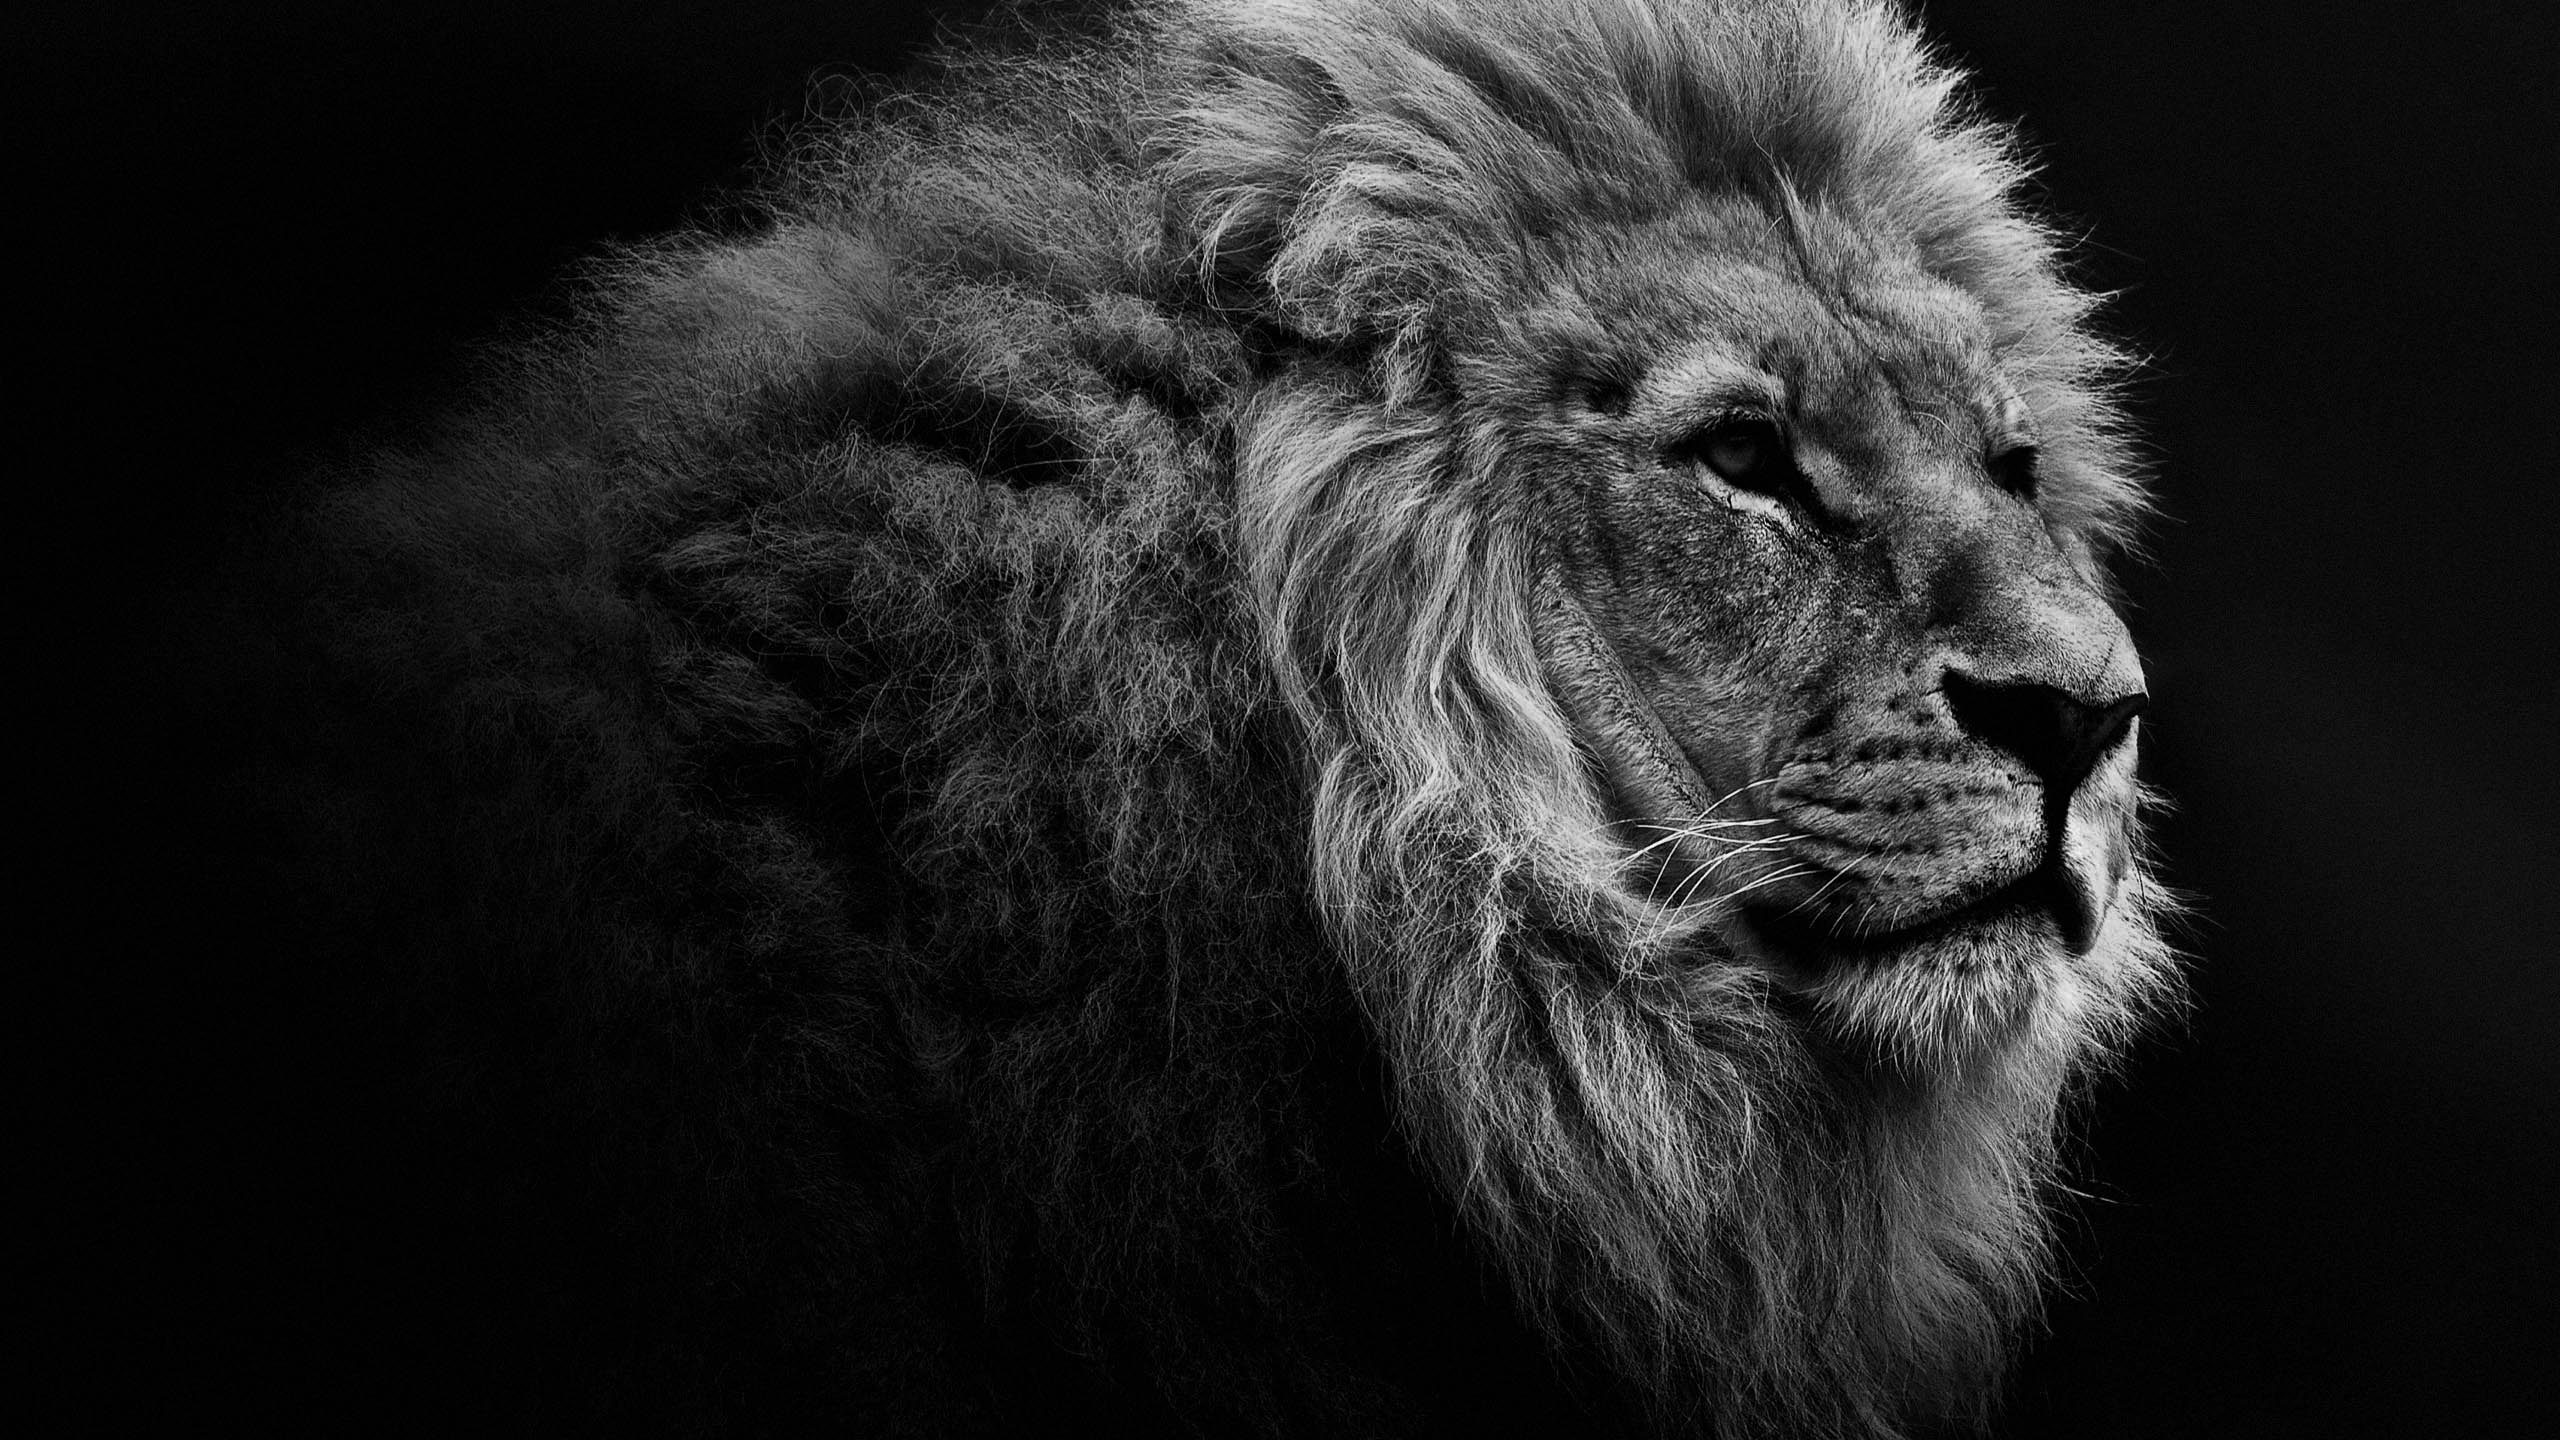 Lion Portrait BW Desktop